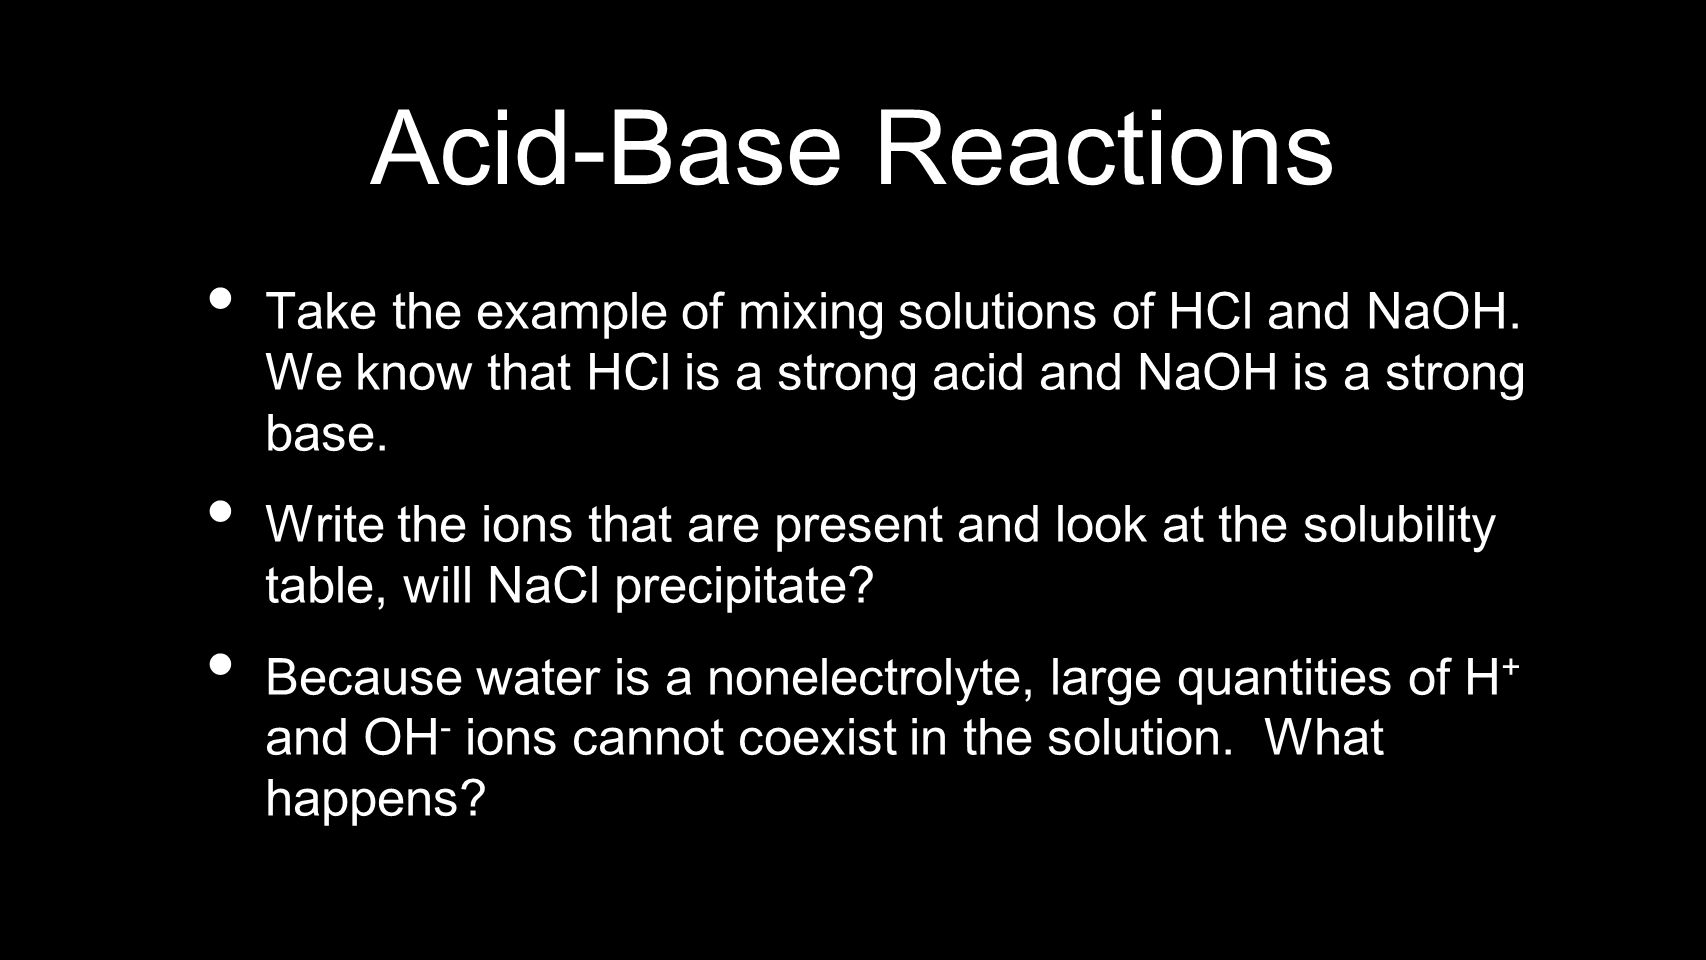 Acid-Base Reactions Take the example of mixing solutions of HCl and NaOH. We know that HCl is a strong acid and NaOH is a strong base.